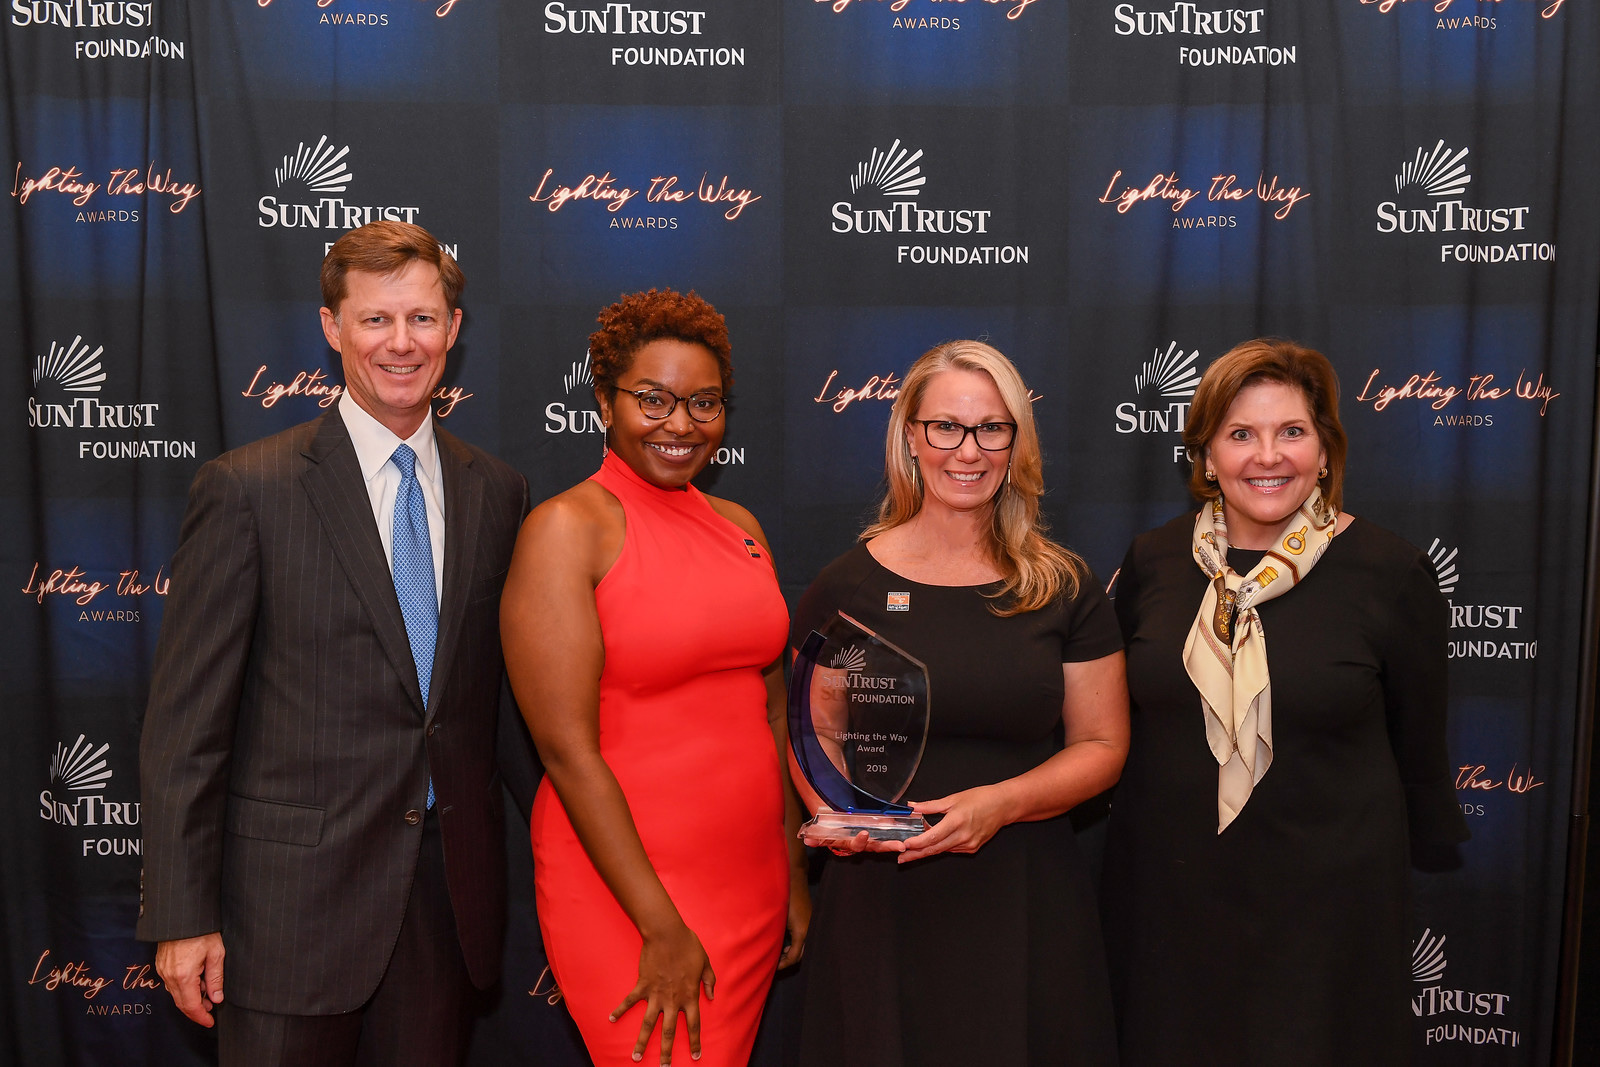 The Women's Resource of Houston Receives SunTrust Foundation's 2019 Lighting the Way Award and $75,000 Grant